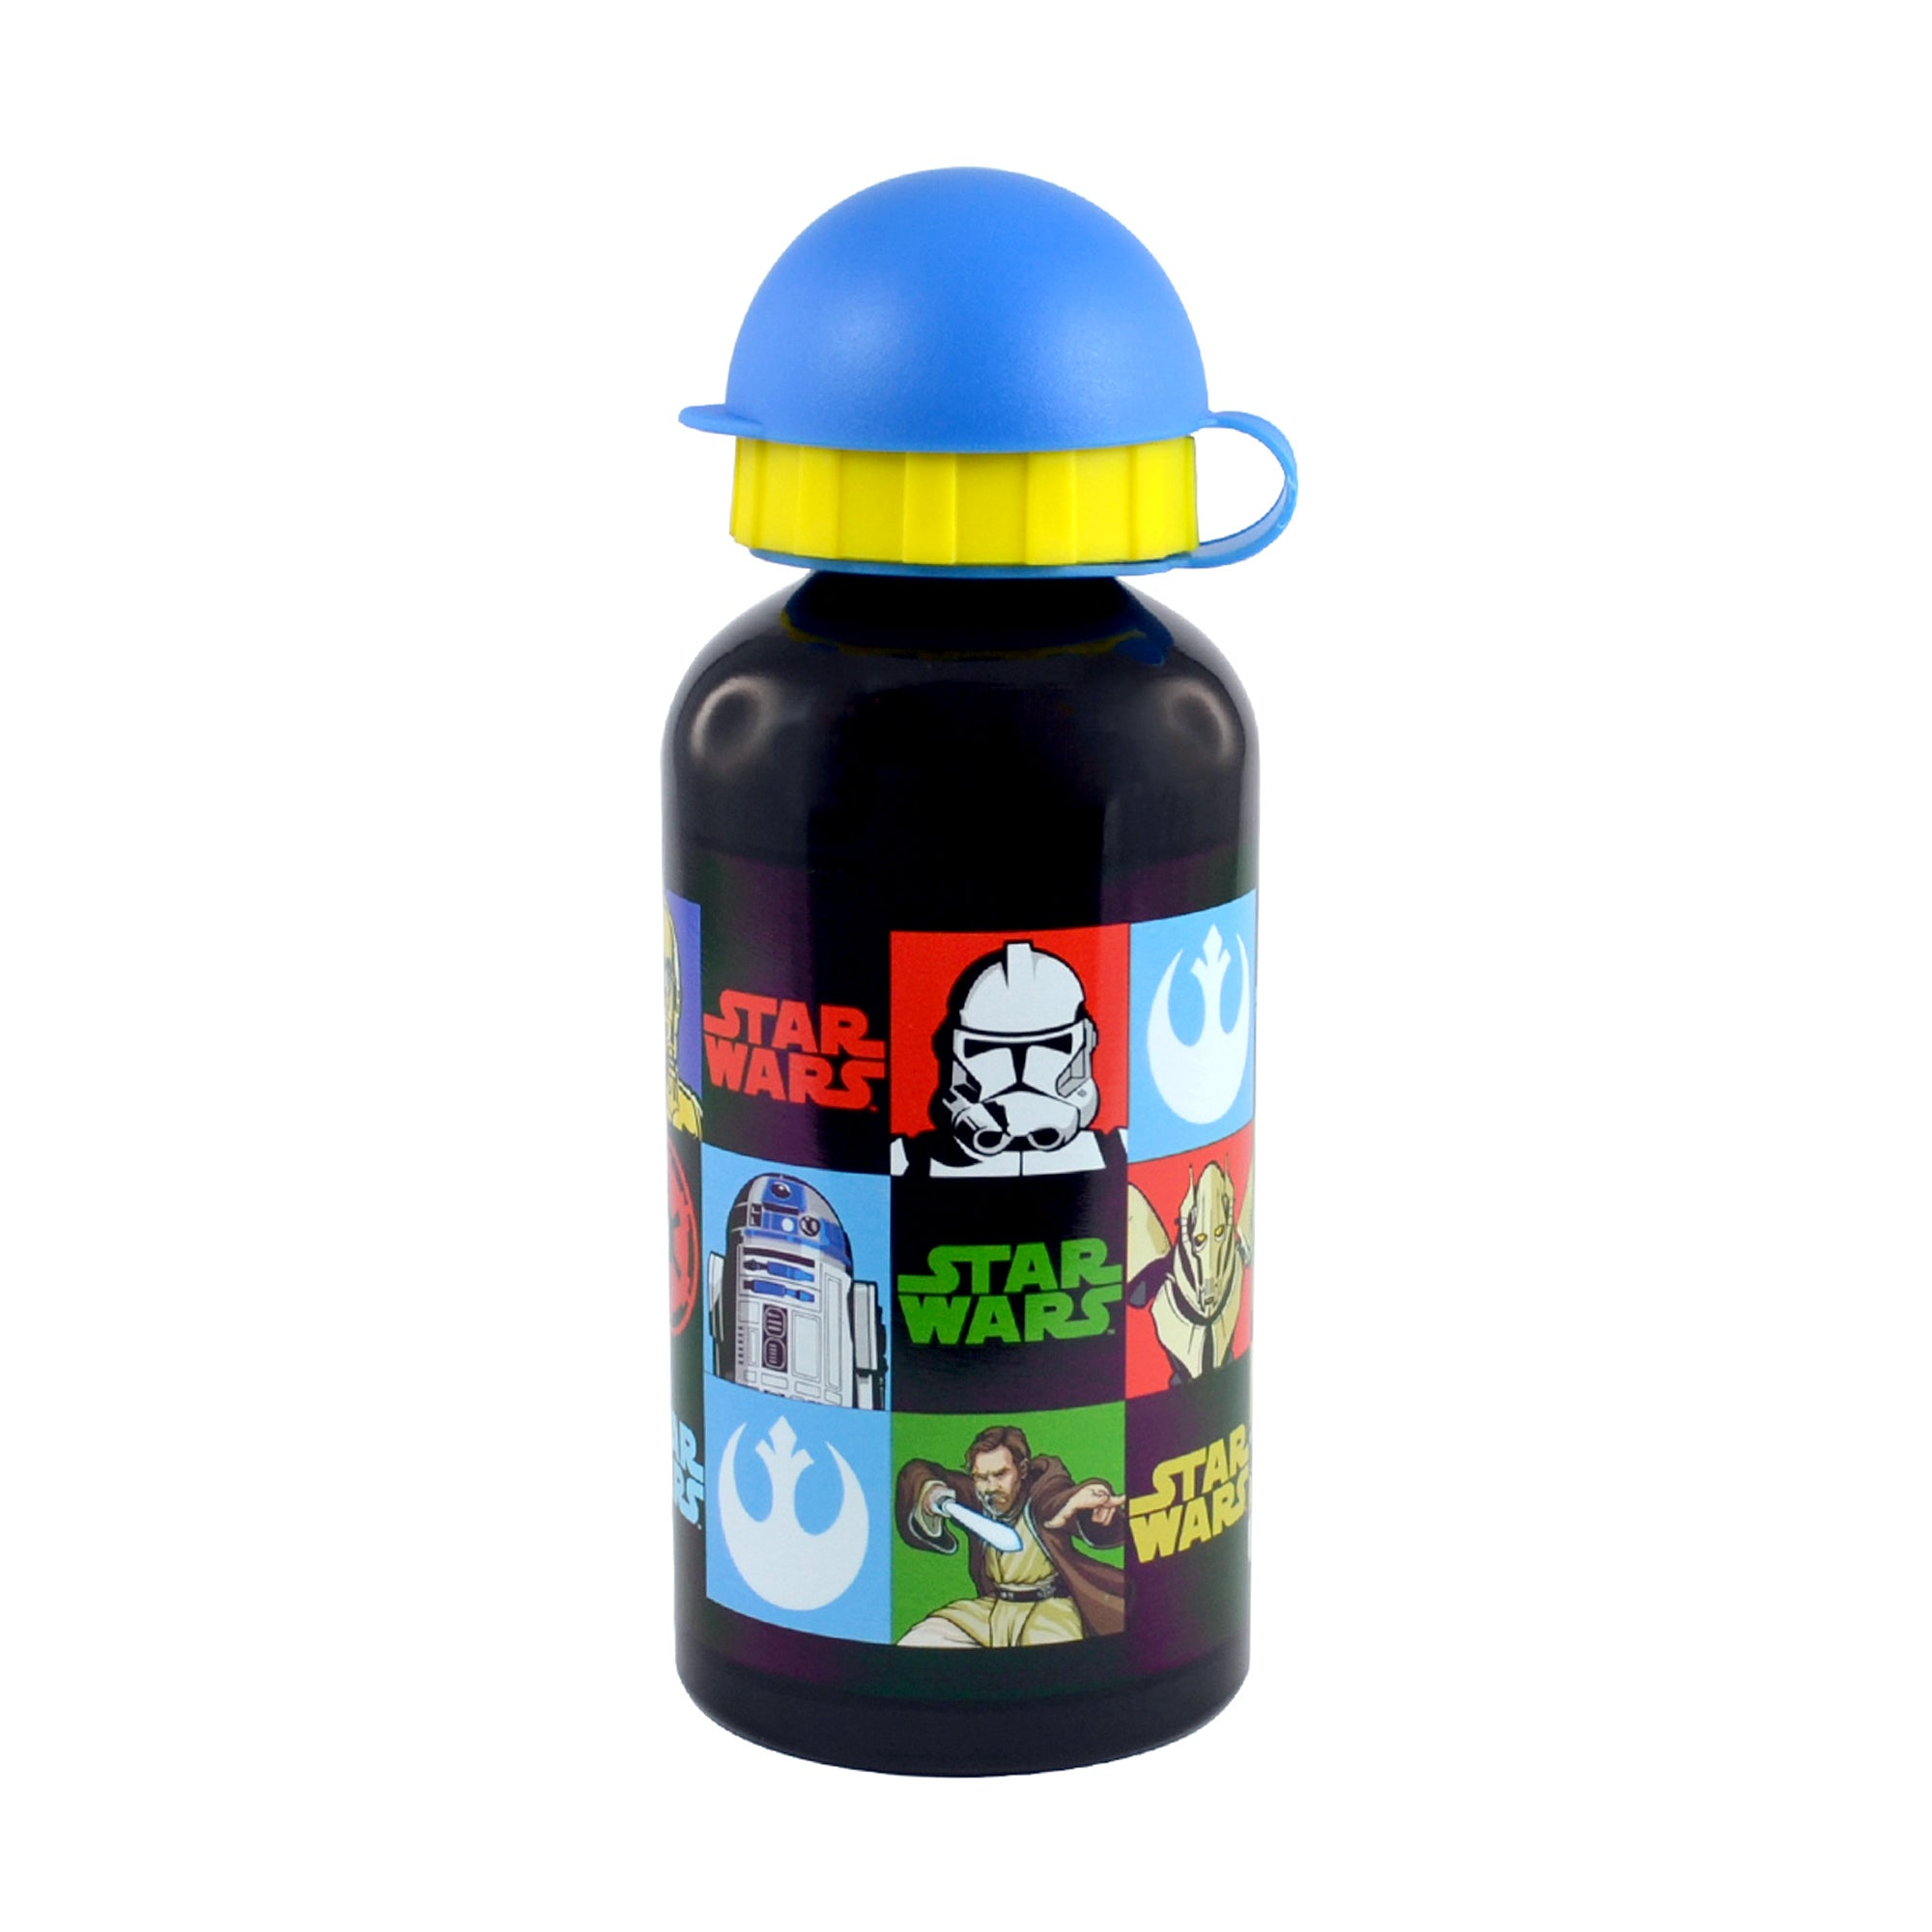 Star Wars Bottle